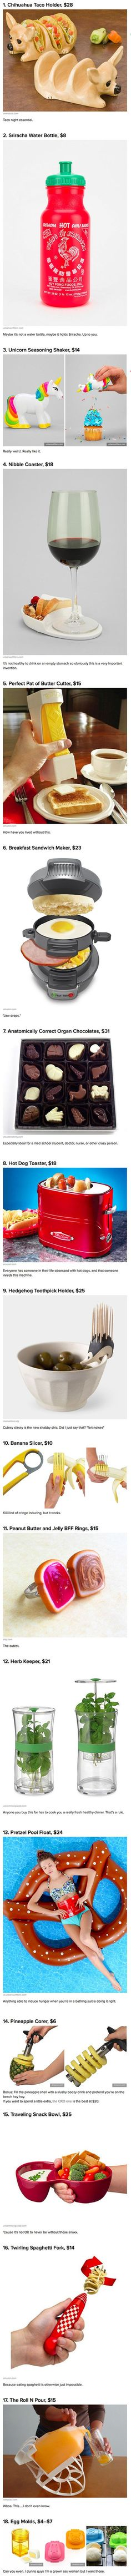 We have rounded up some cool gadgets and accessories for geeky food lovers.